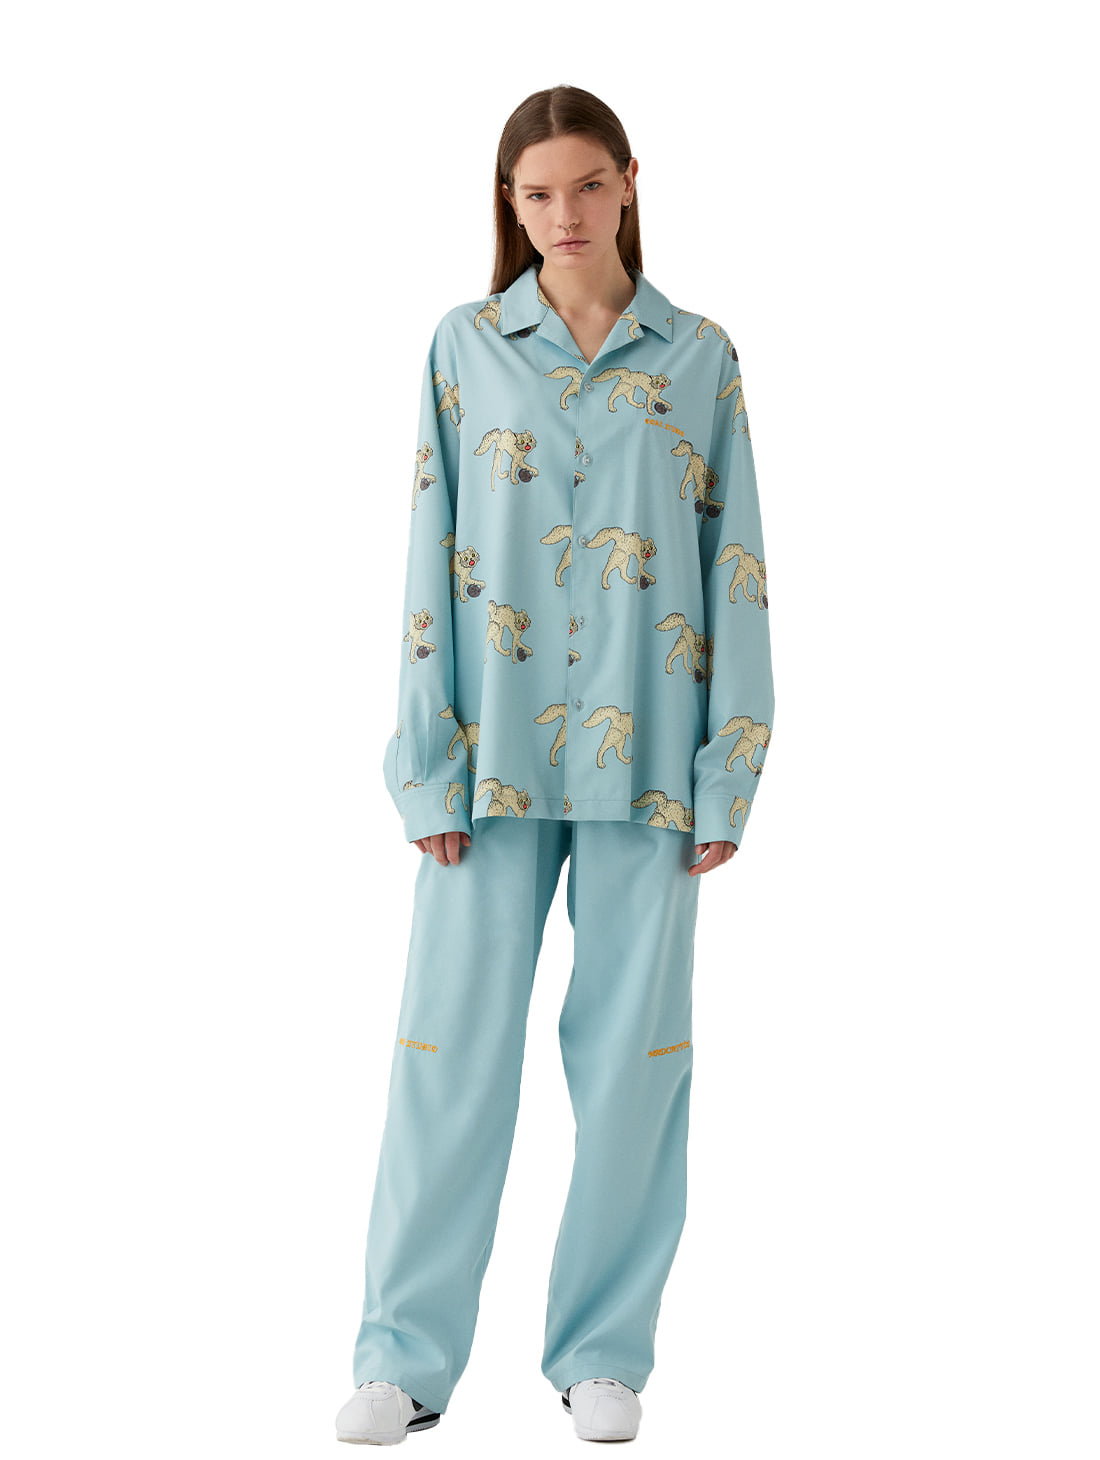 GOALSTUDIO [10% OFF] MC ALL OVER PATTERN SHIRTS & PANTS SET - LIGHT BLUE